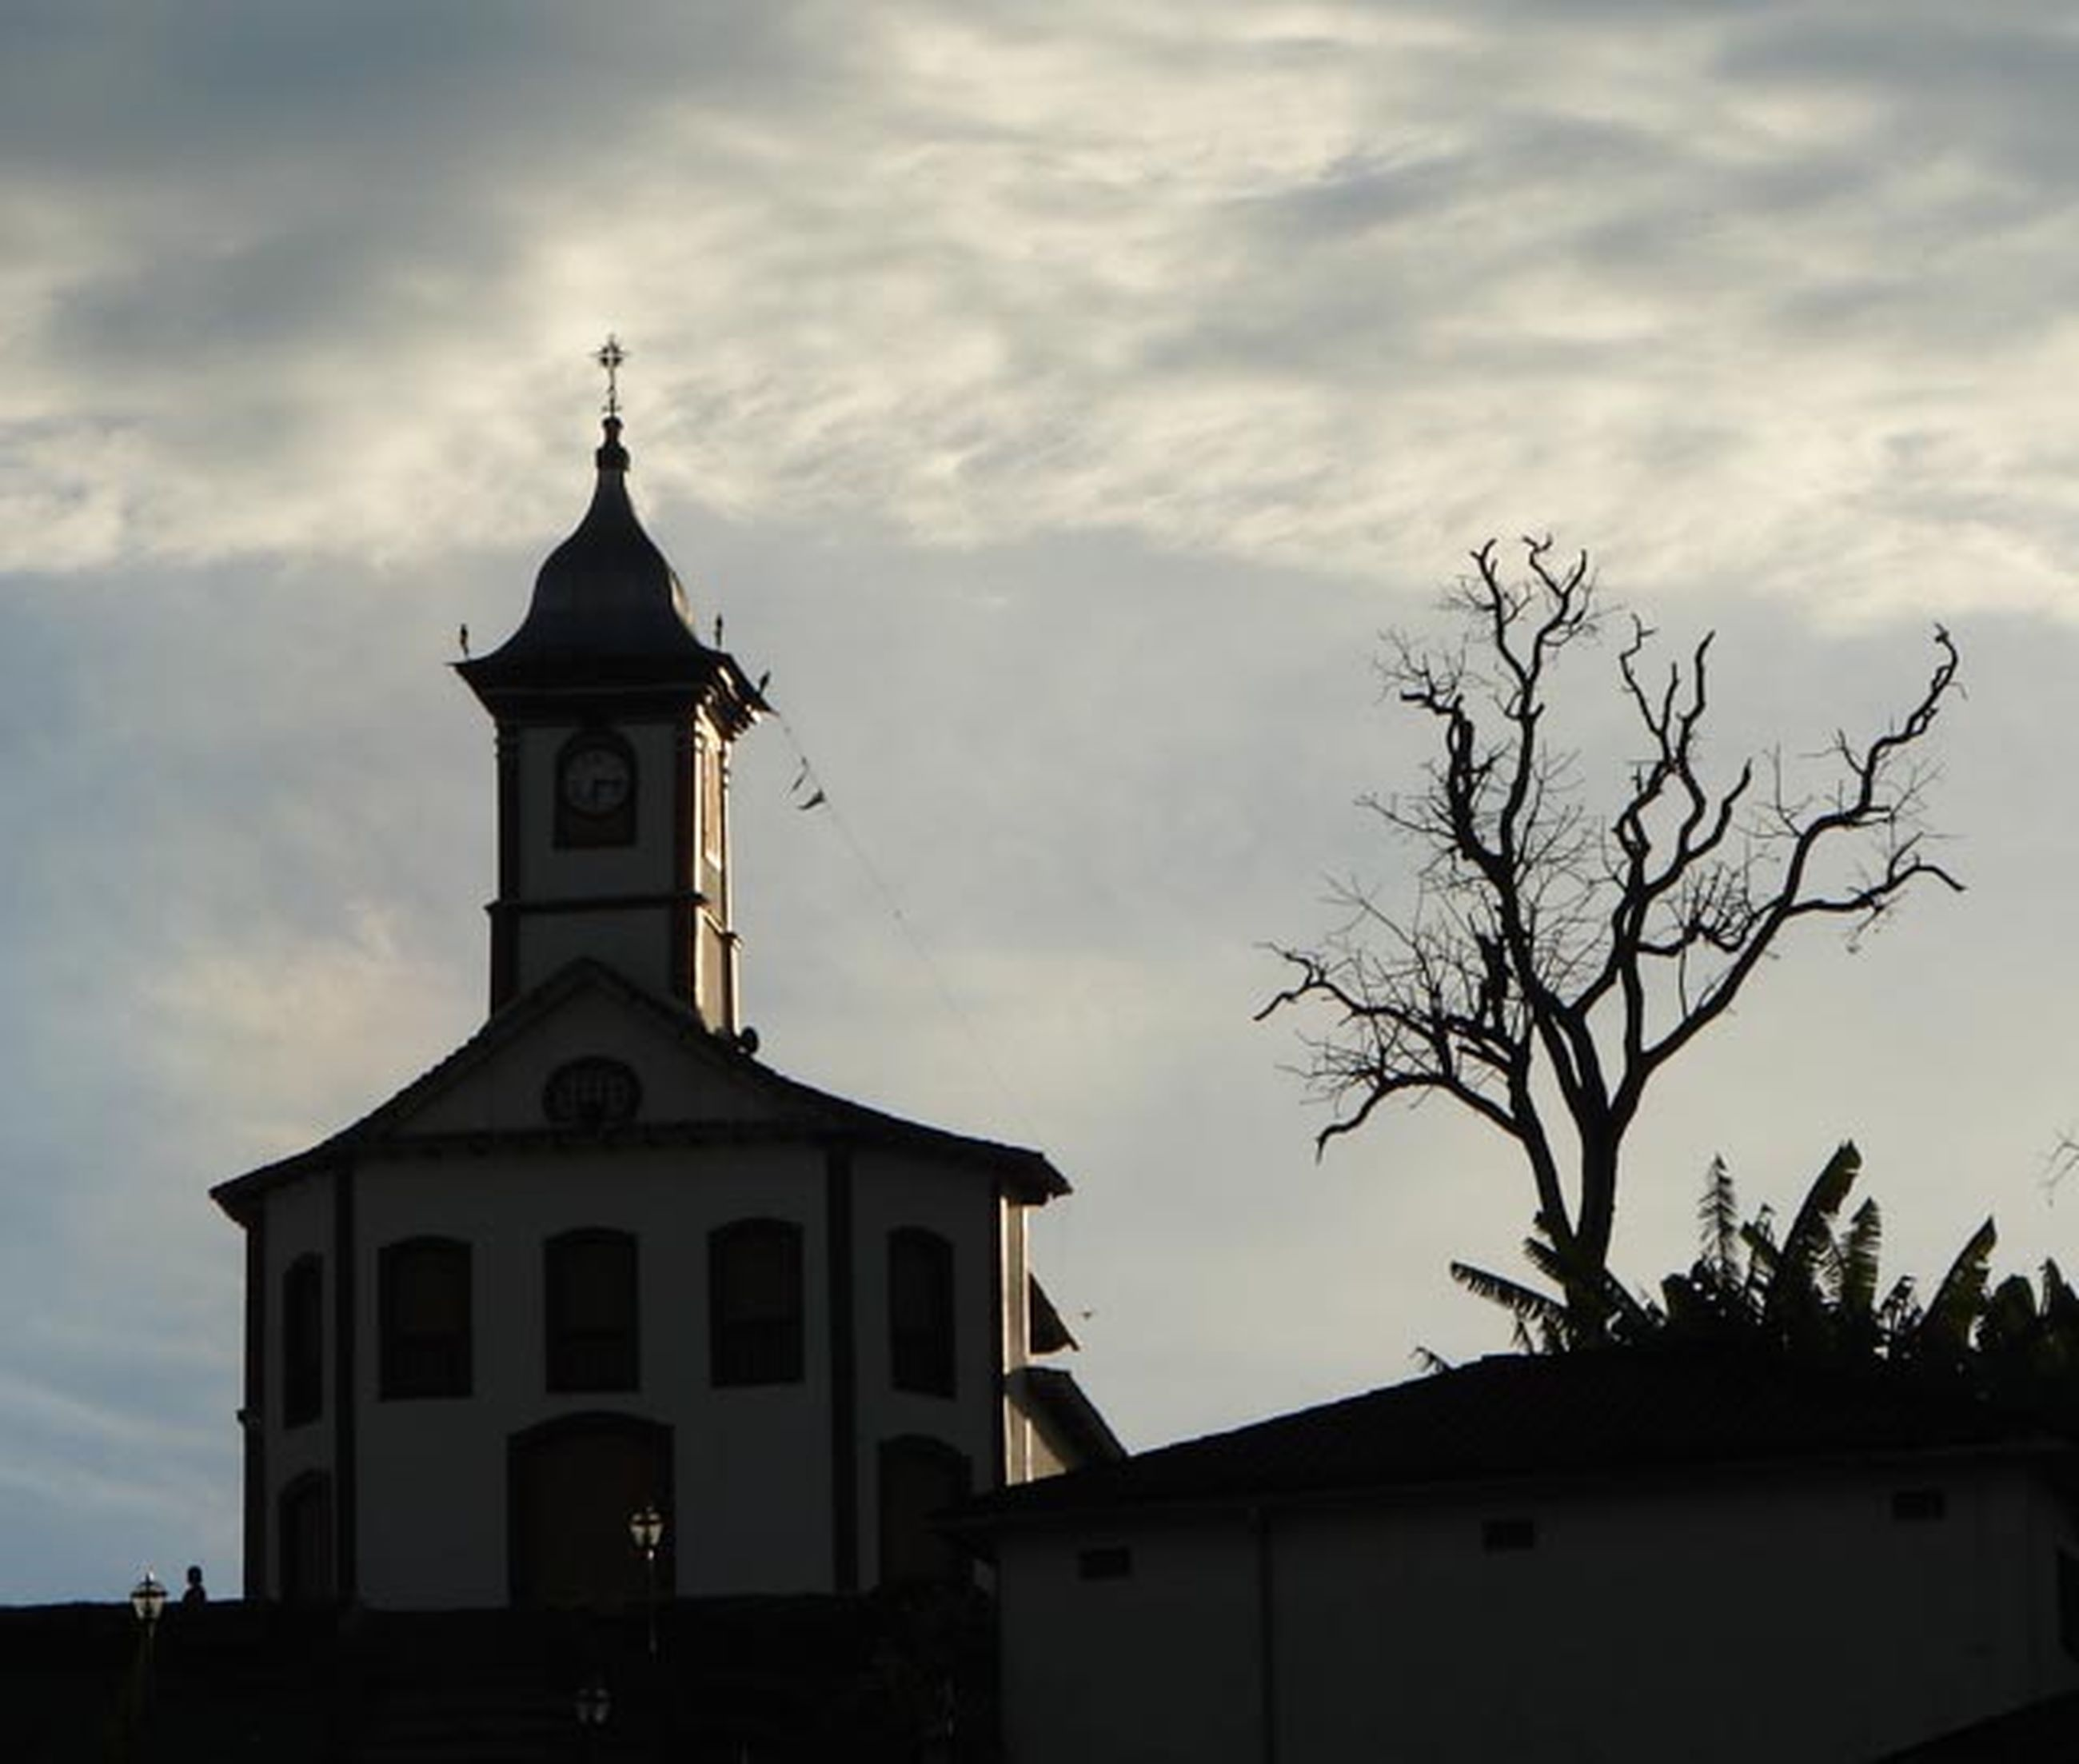 building exterior, architecture, low angle view, built structure, church, sky, religion, place of worship, spirituality, cloud - sky, silhouette, tree, cross, cloud, high section, cloudy, outdoors, bare tree